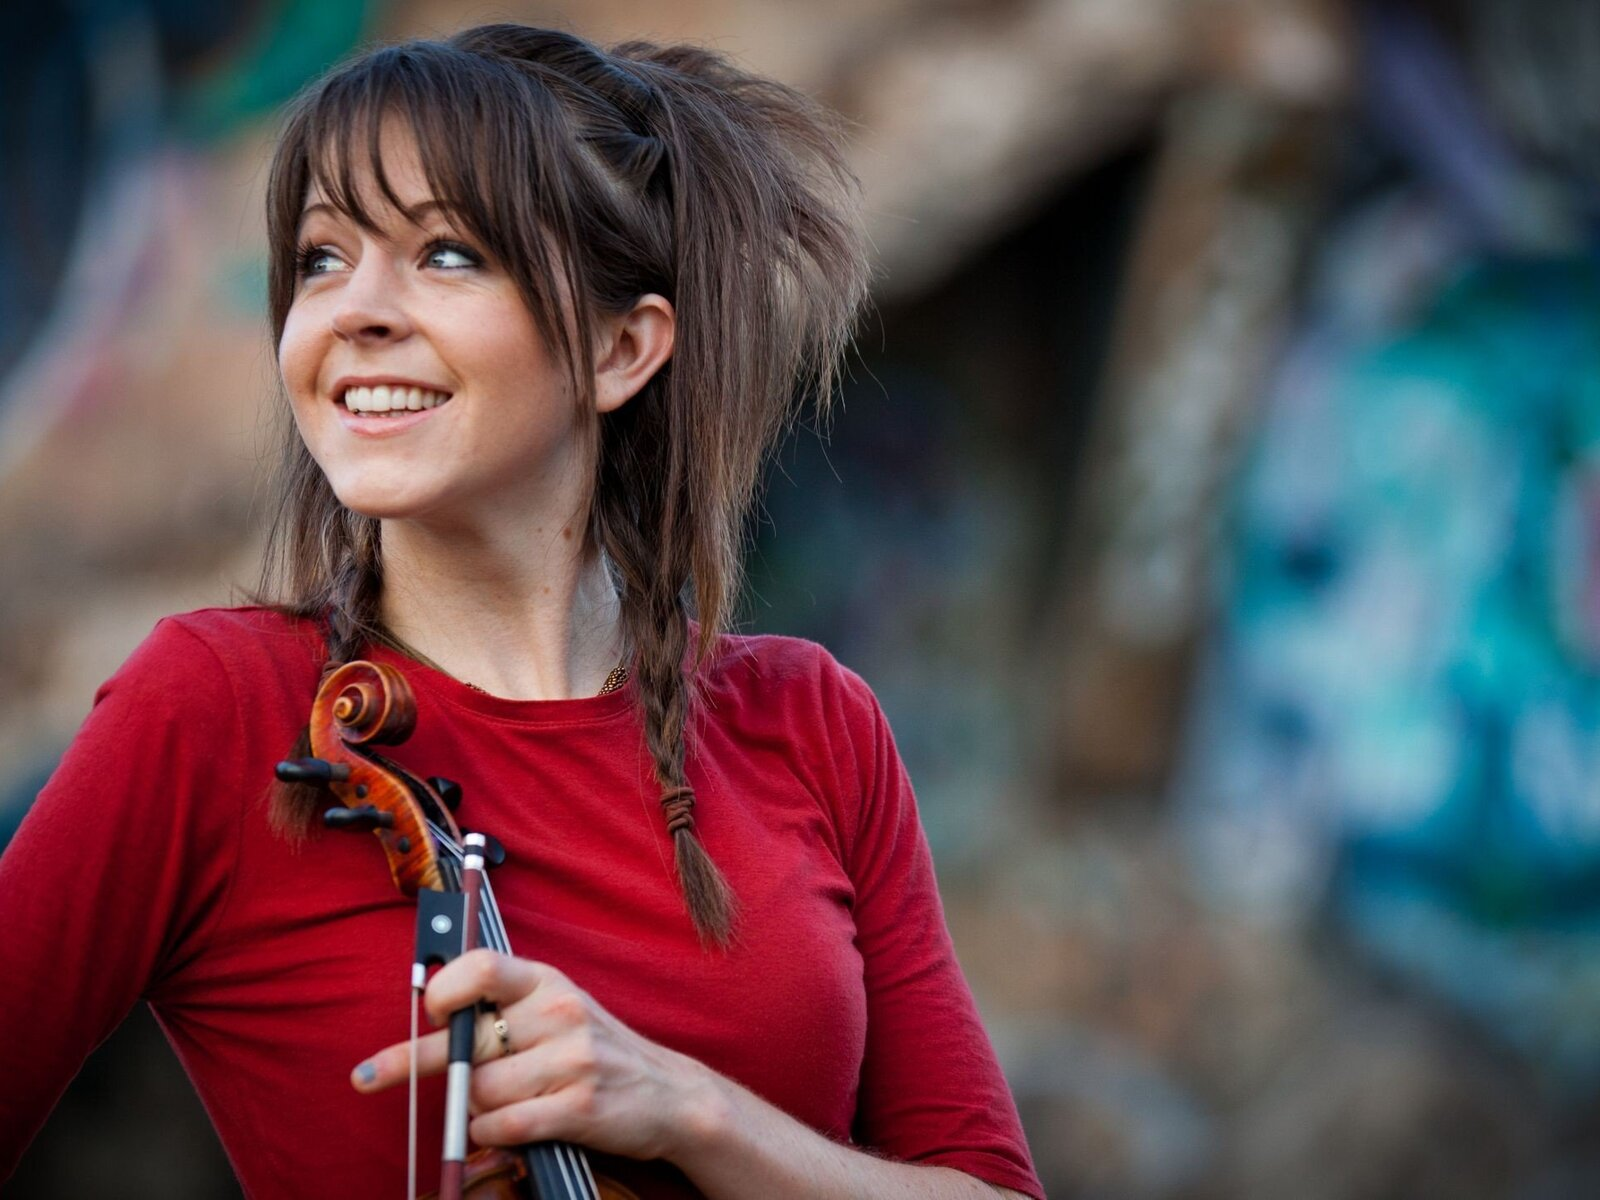 lindsey-stirling-cute-pic.jpg